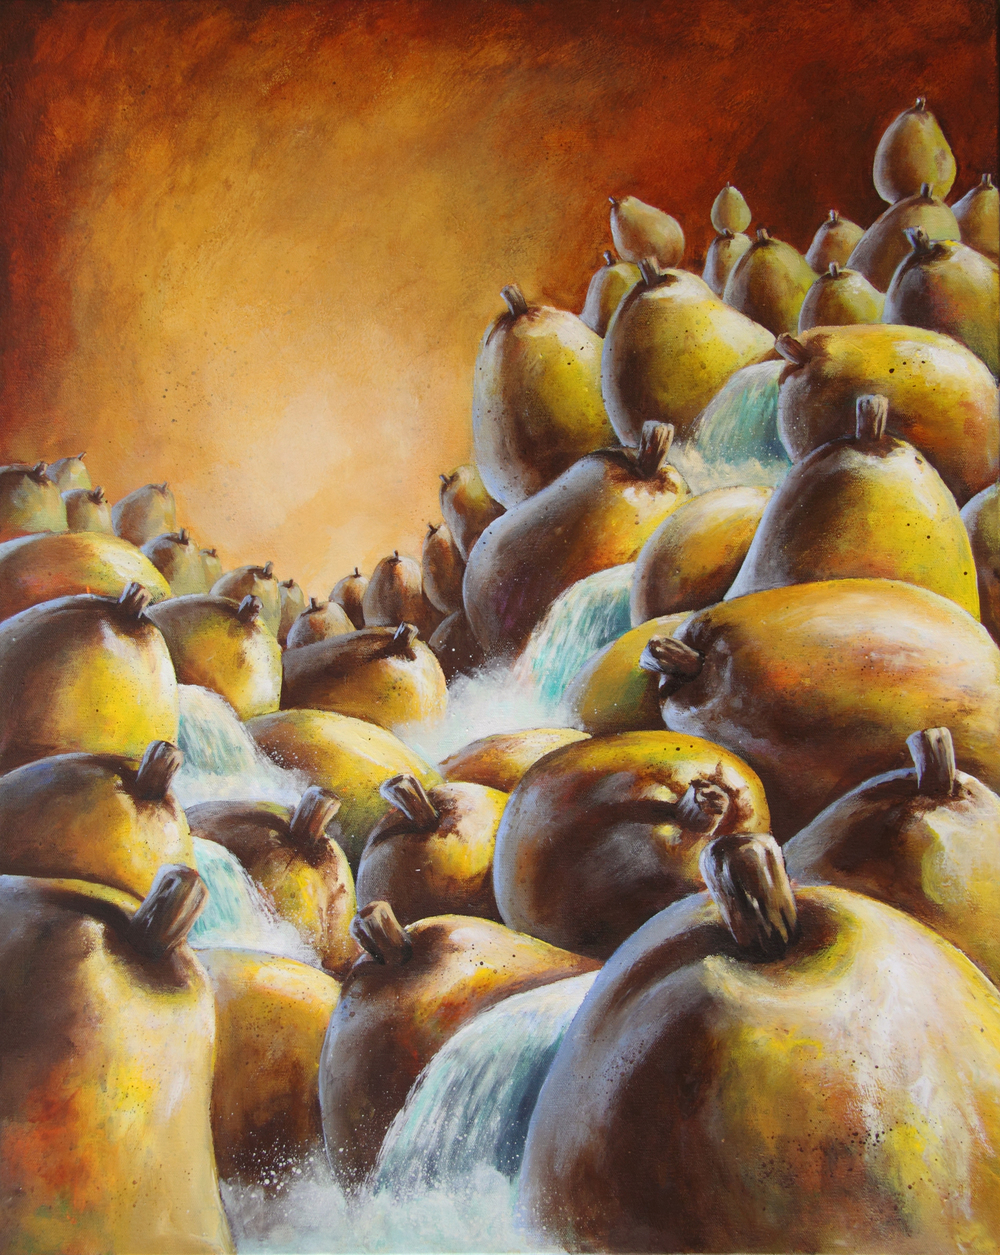 bill_higginson_pearadise-surrealism_painting-acrylic-painting-pears-fruit-canvas